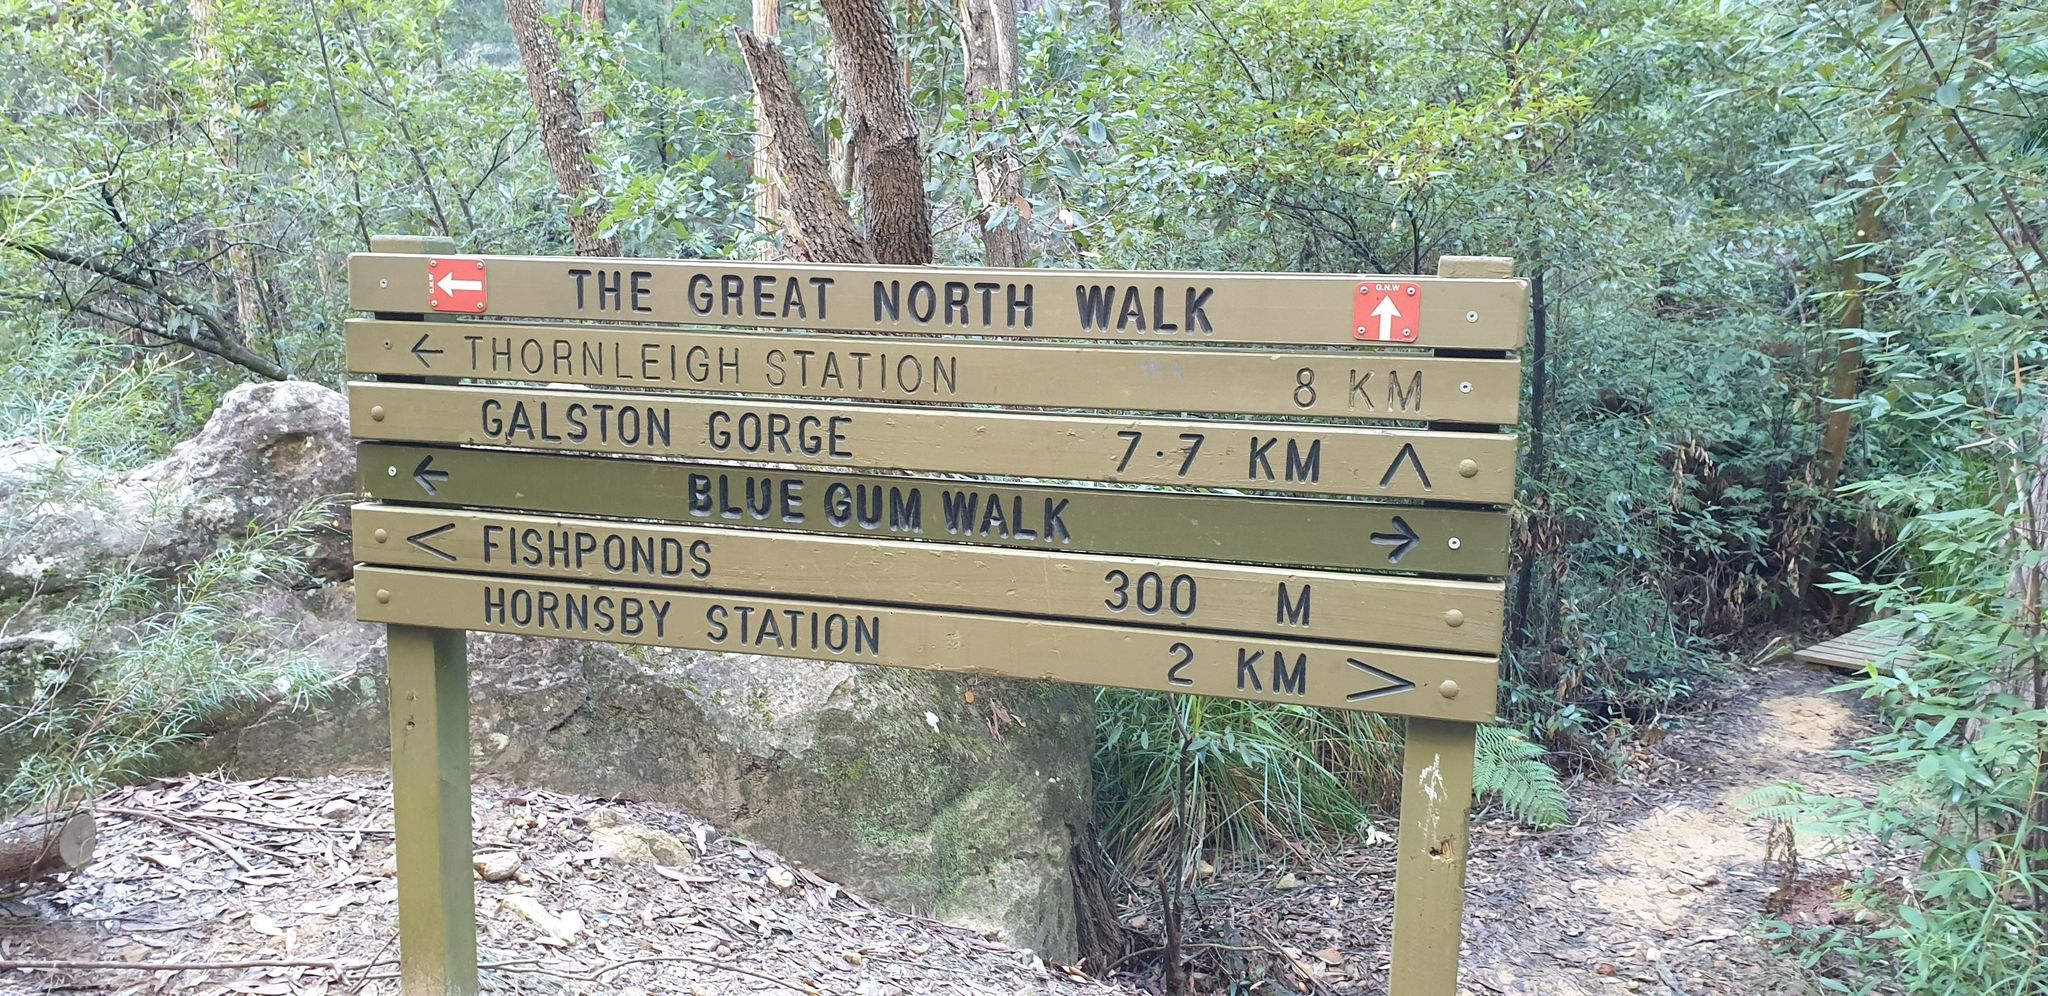 Great North Walk: Thornleigh to Hornsby - New South Wales